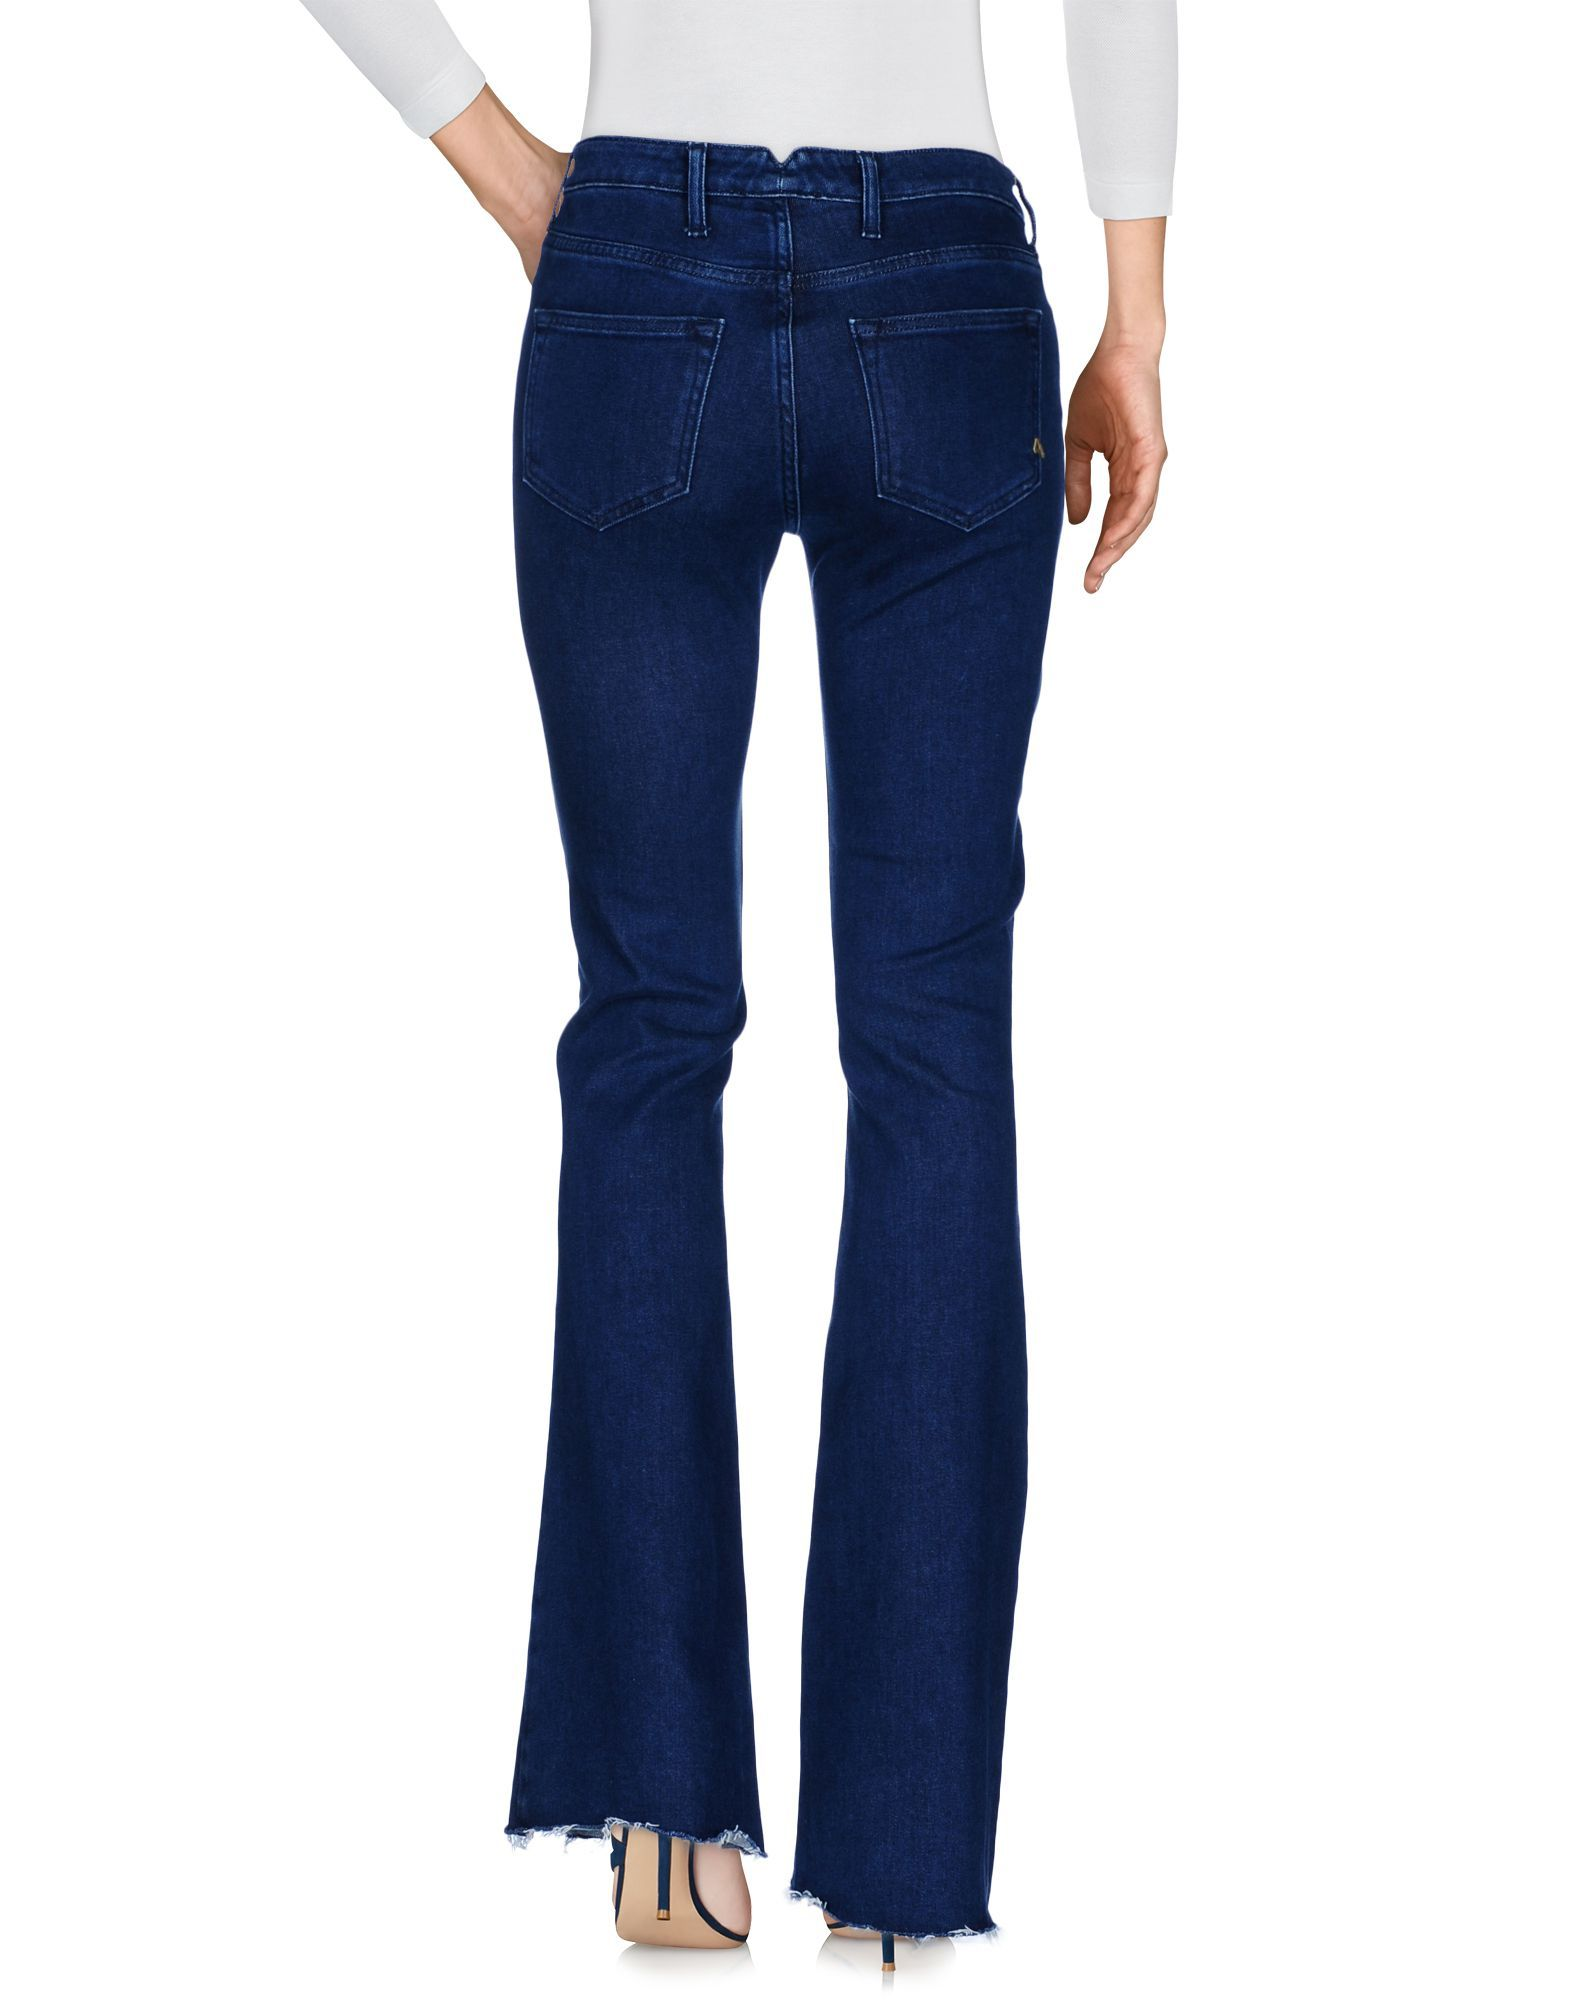 Cycle Blue Cotton Flare Jeans